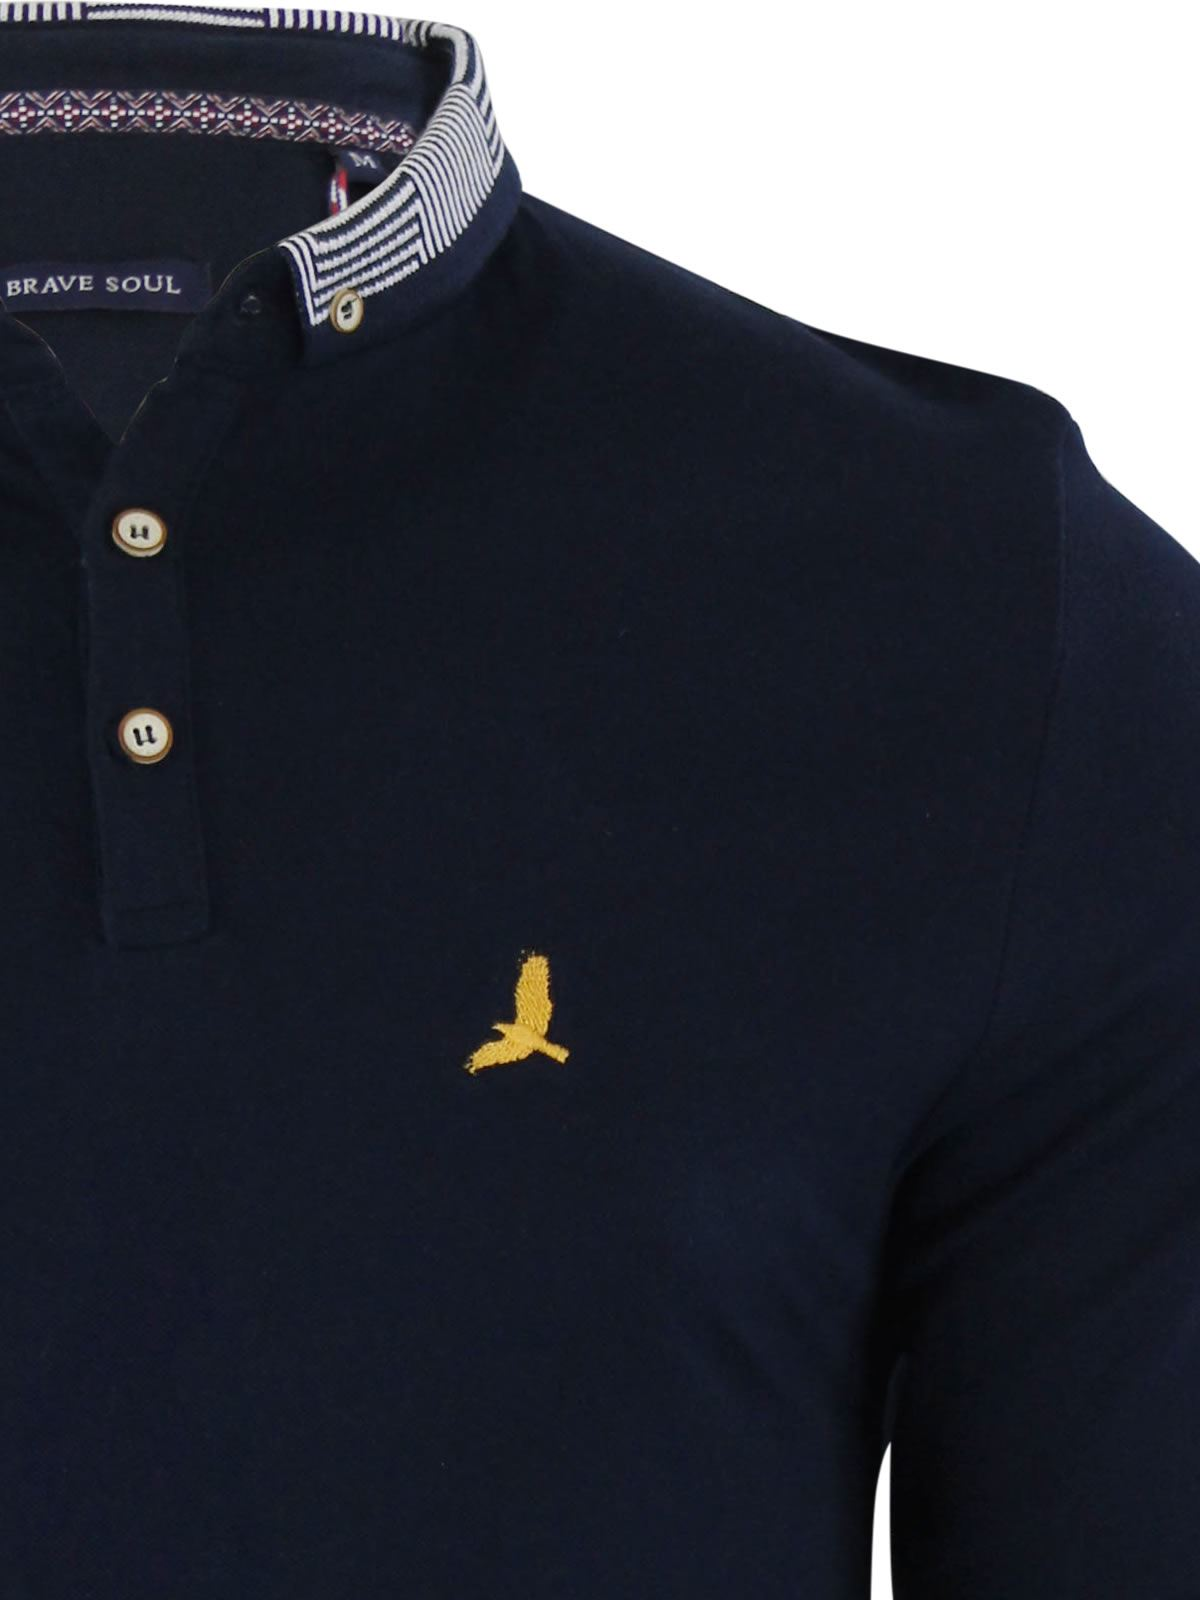 Mens-Polo-Shirt-Brave-Soul-Long-Sleeve-Collared-Top-In-Various-Styles thumbnail 25